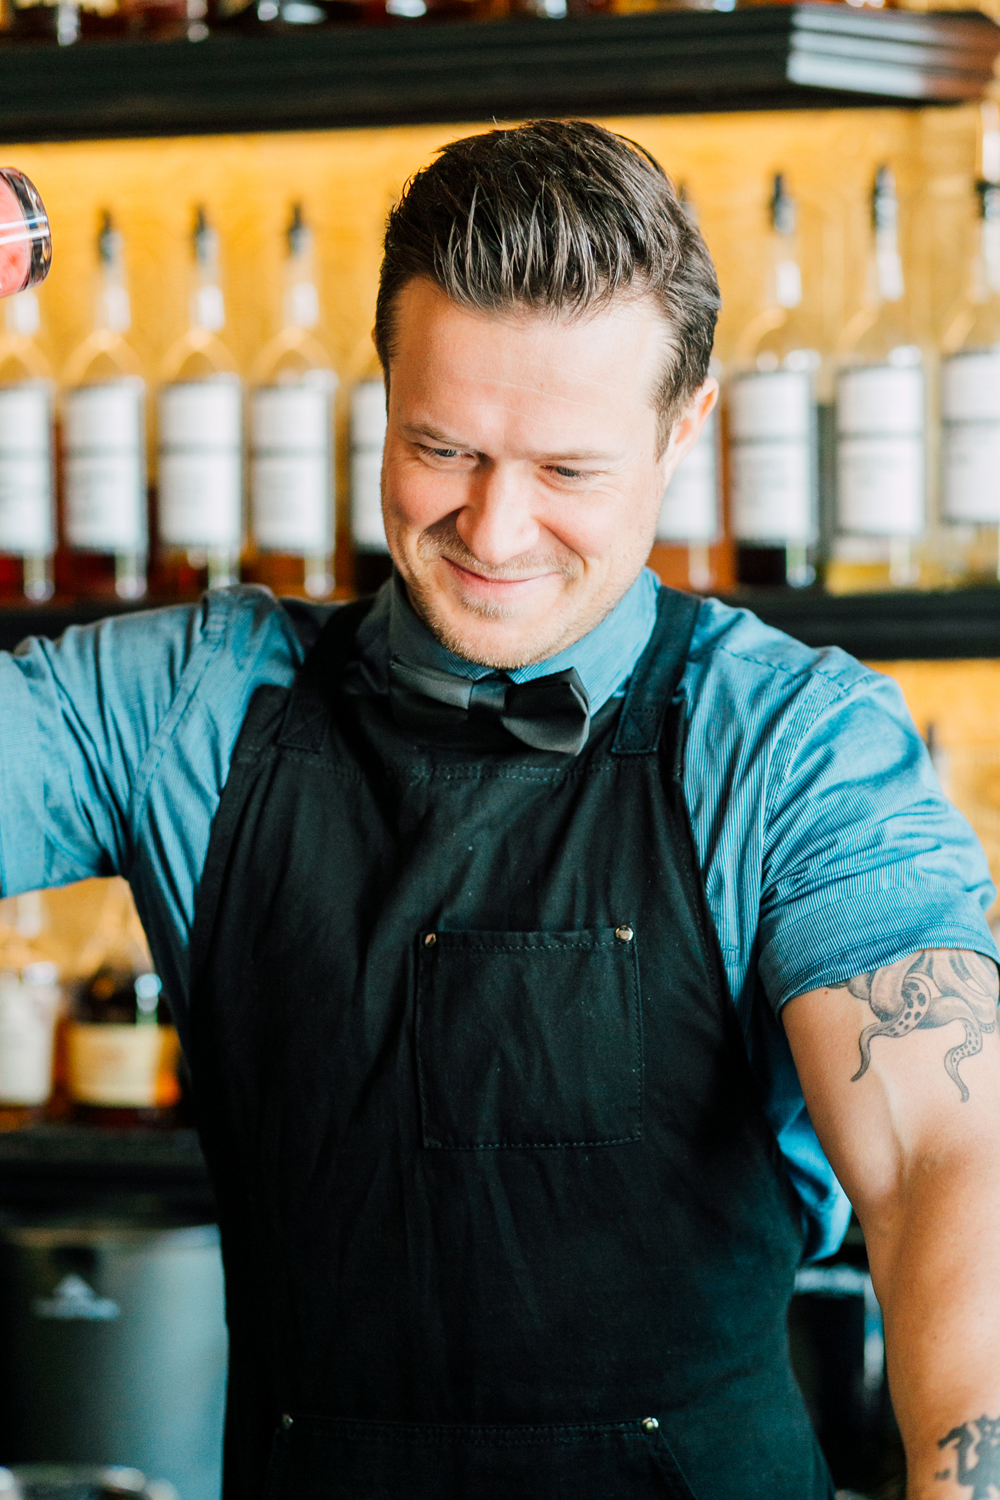 009-bellingham-food-stylist-food-photographer-katheryn-moran-photography-galloways-cocktail-bar-fairhaven.jpg